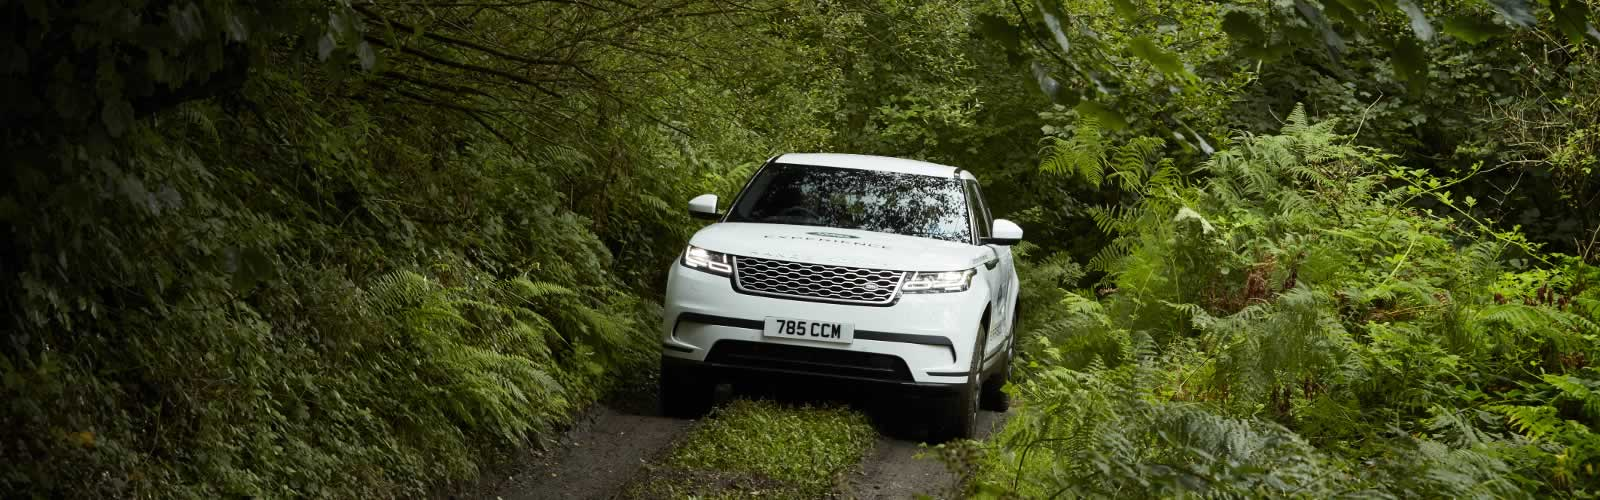 5-STAR ACTIVITY CENTRE, LAND ROVER EXPERIENCE WEST COUNTRY IS LOCATED AT HONITON.<br><br>